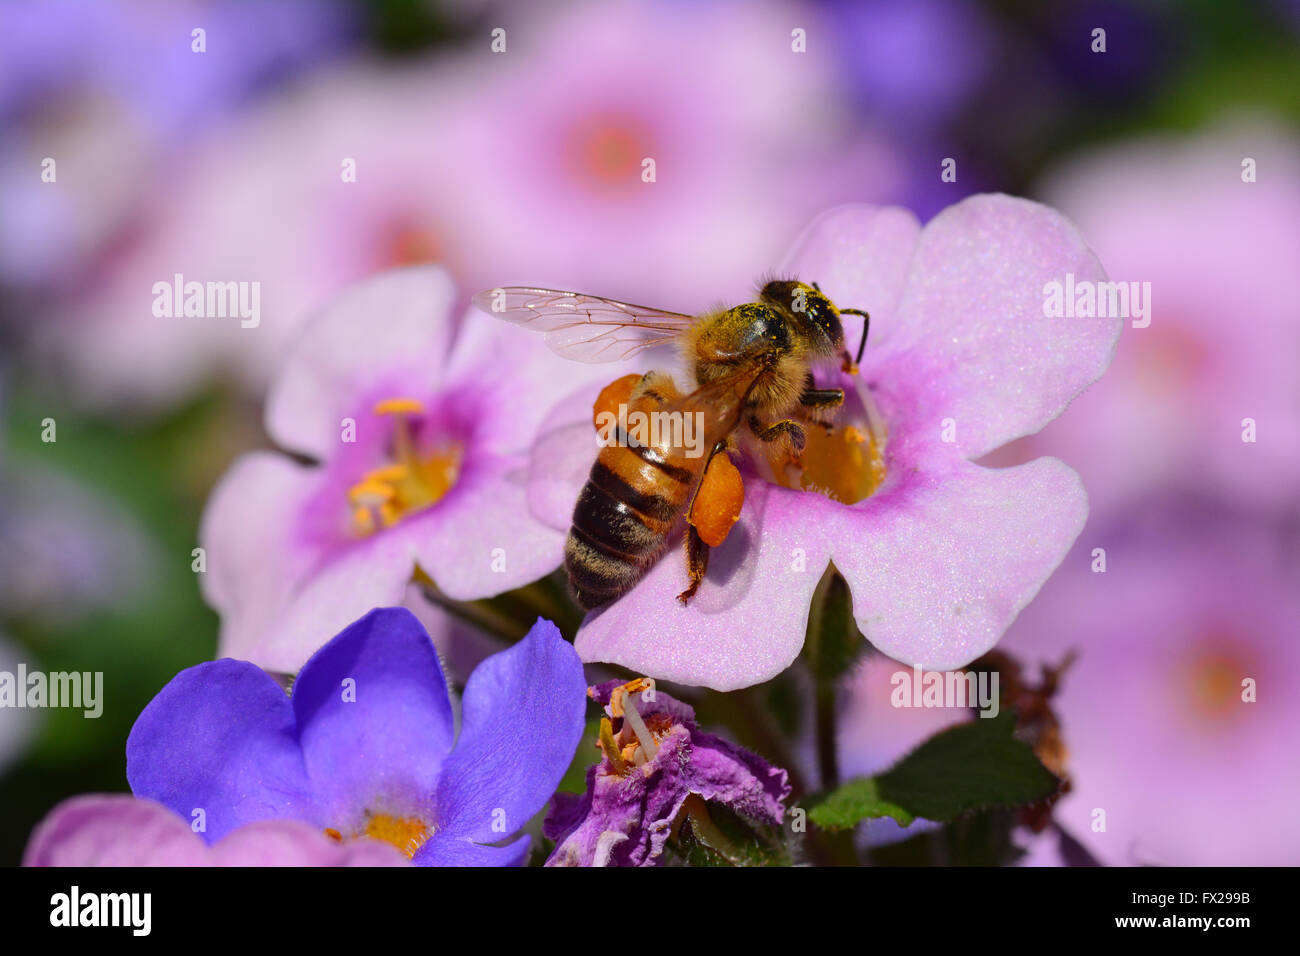 Bee pollinating pink flower, Close-up - Stock Image